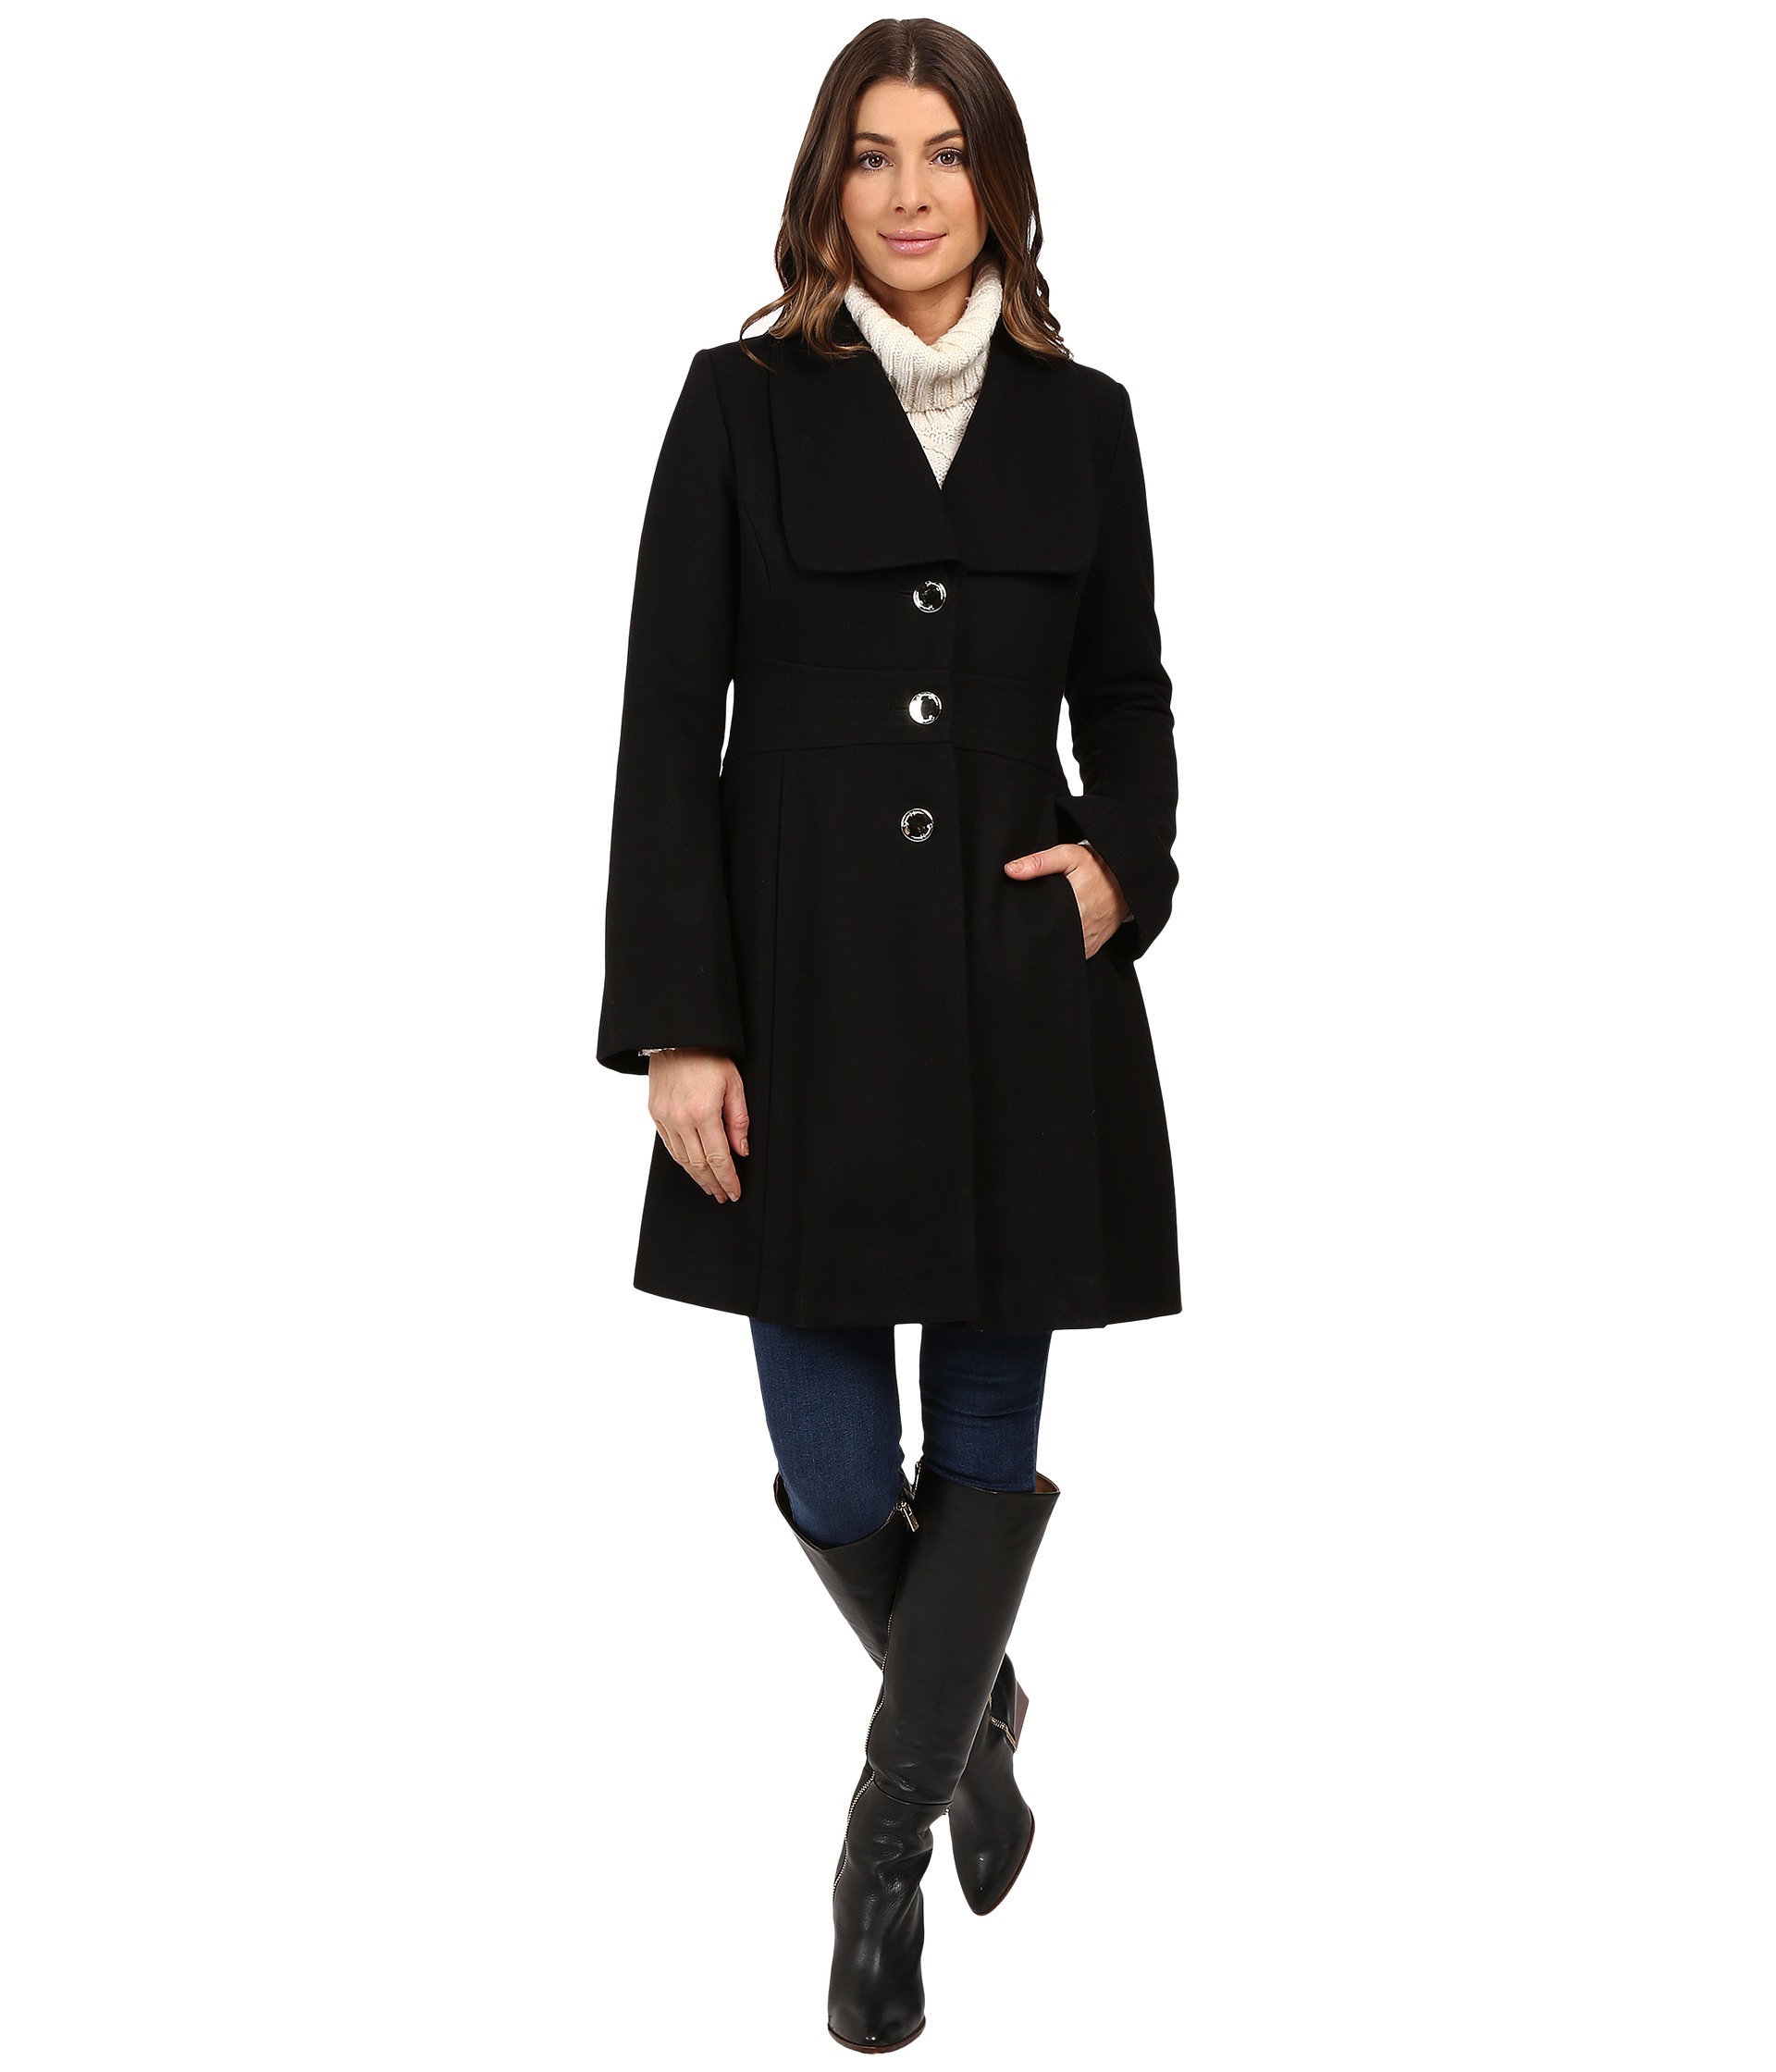 Jessica Simpson Coats &amp Outerwear Women | Shipped Free at Zappos